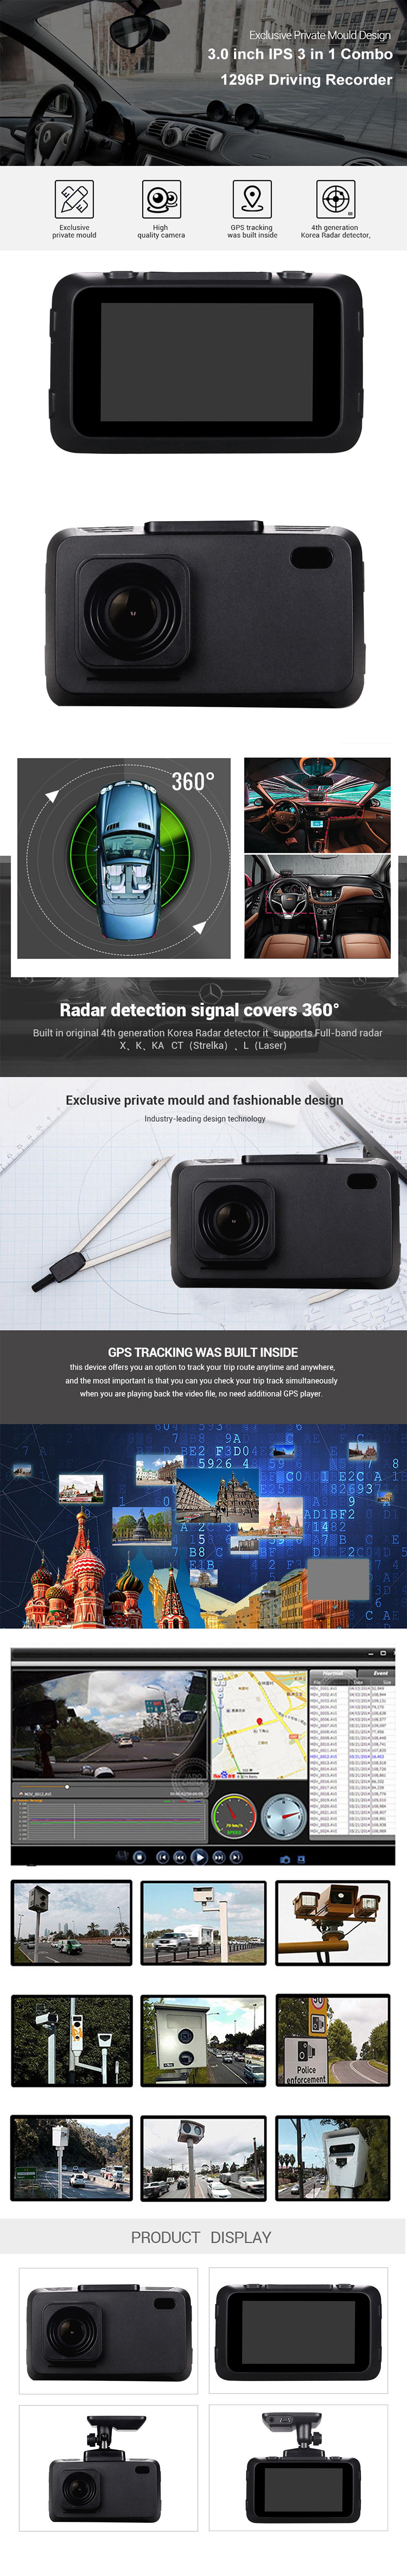 New Russian Anti Radar Detector 3 in 1 Car Dvr GPS Logger 1296P Police Speed Camera WDR Dash Cam